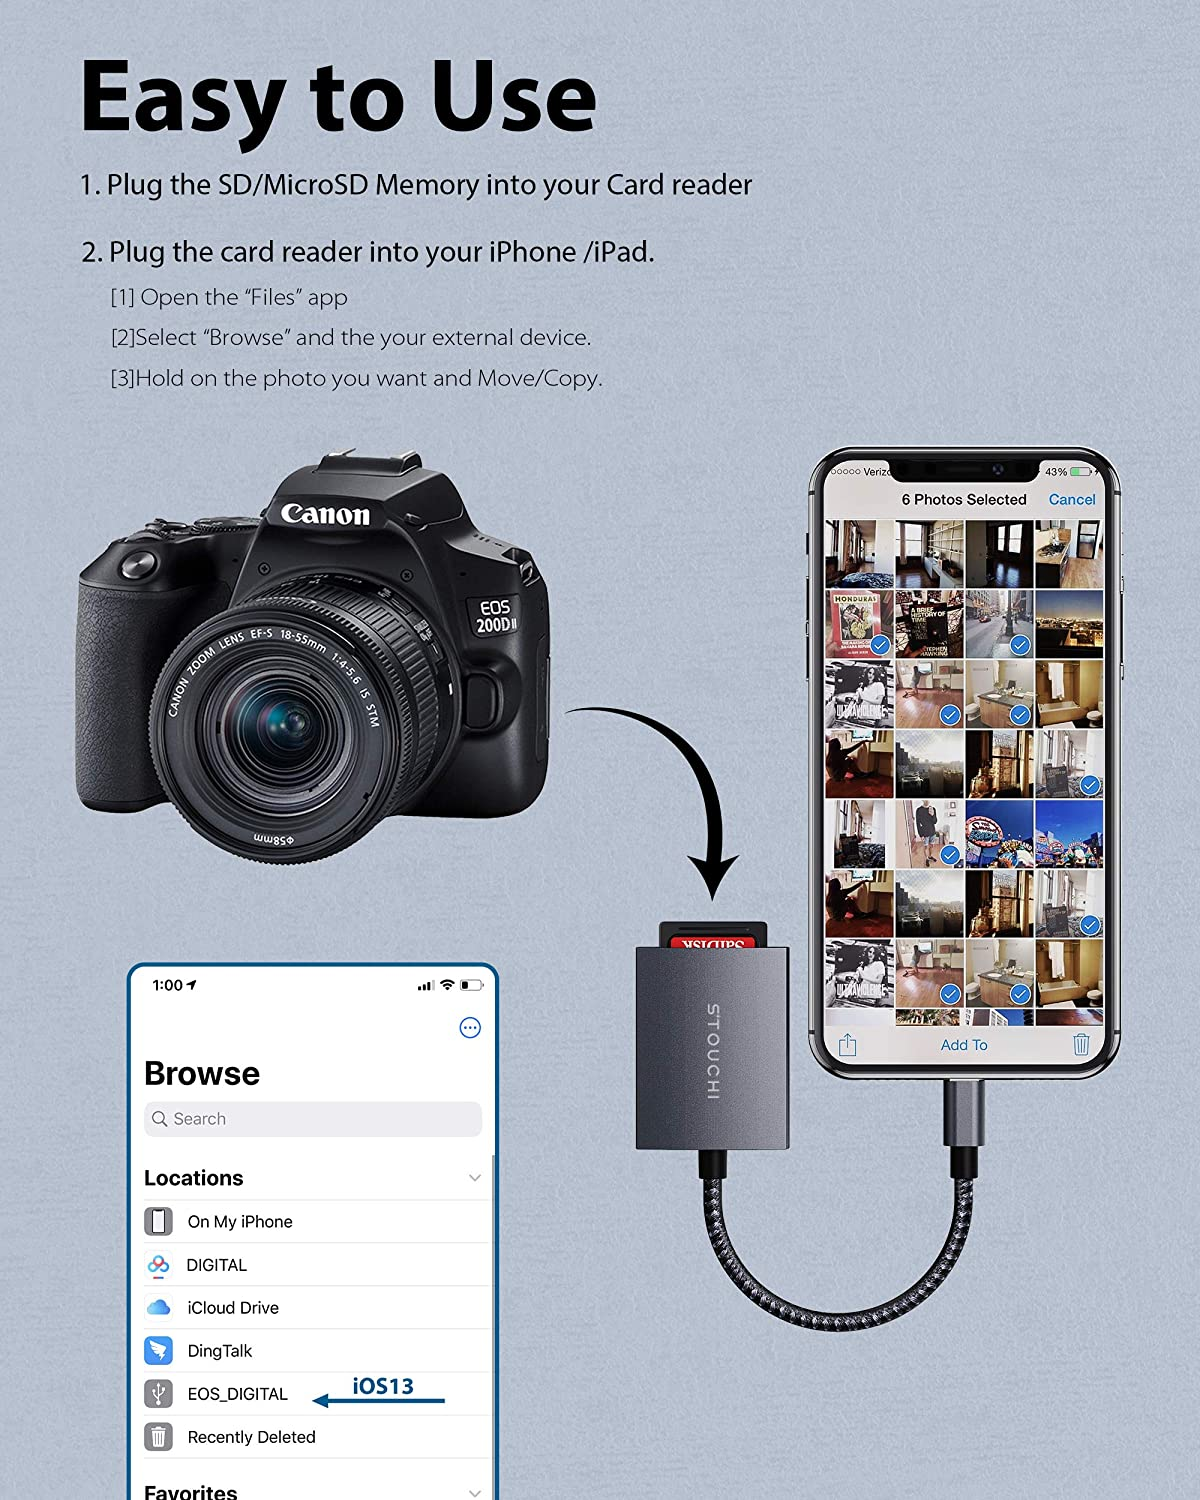 Lightning to SD Camera Card Reader Mfi Certified Stouchi 2 in 1 High-Speed 14Mb//s to 16Mb//s SD//MicroSD Camera Memory Card Reader for Compatible iPhone//iPad//iPod Series with iOS 9.2 or Later